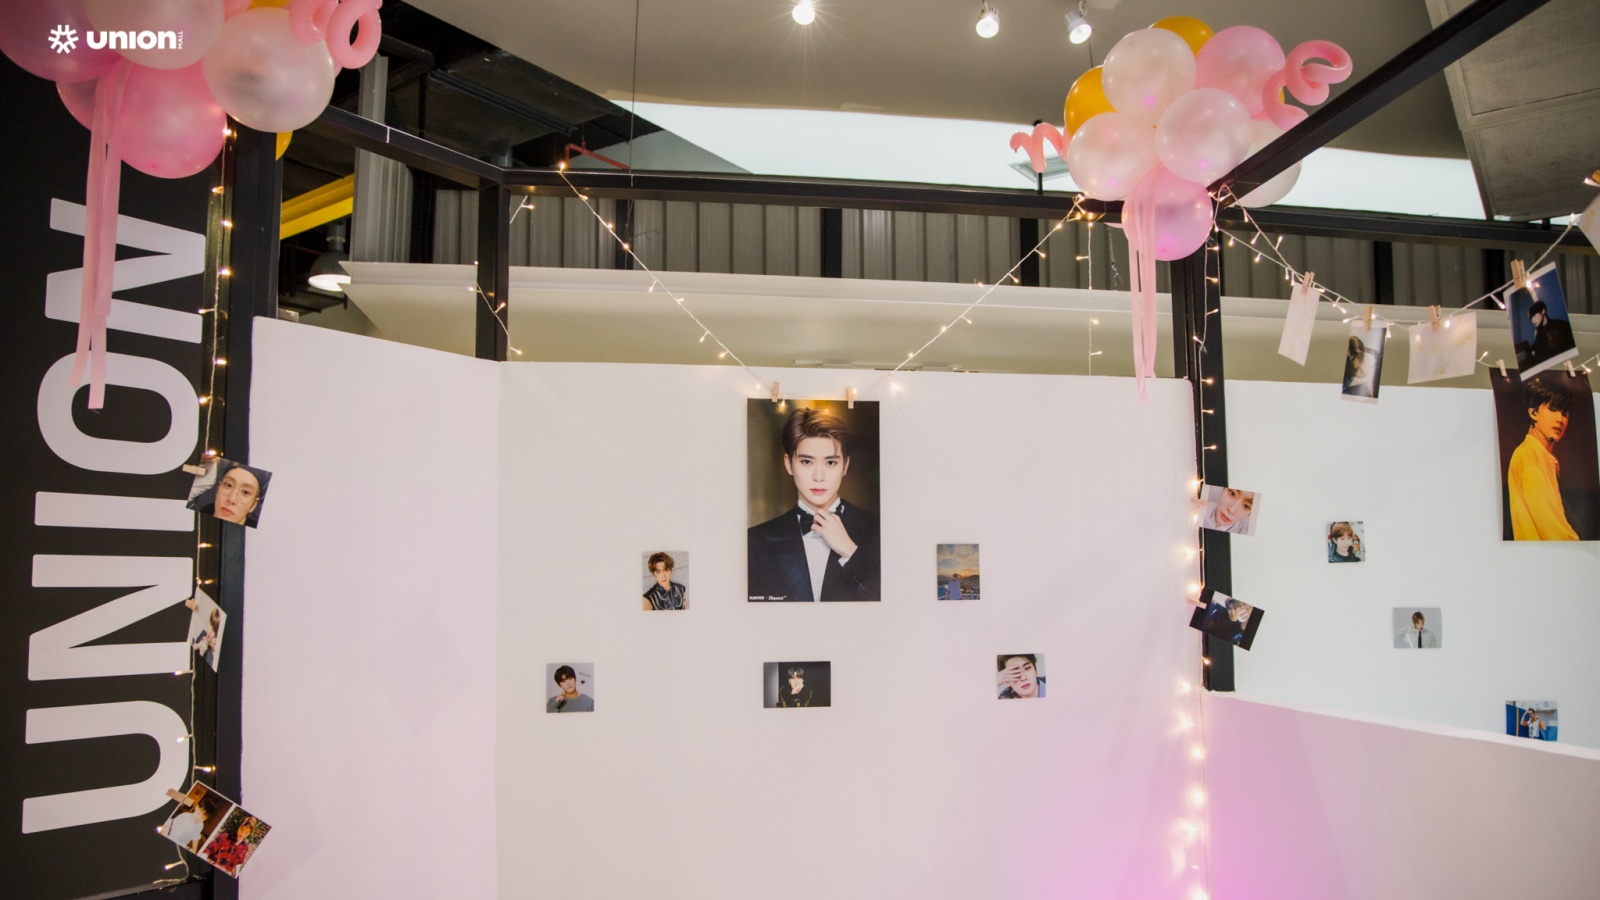 NCT Feb Boys with Ten B-day at Union CO-Event Space